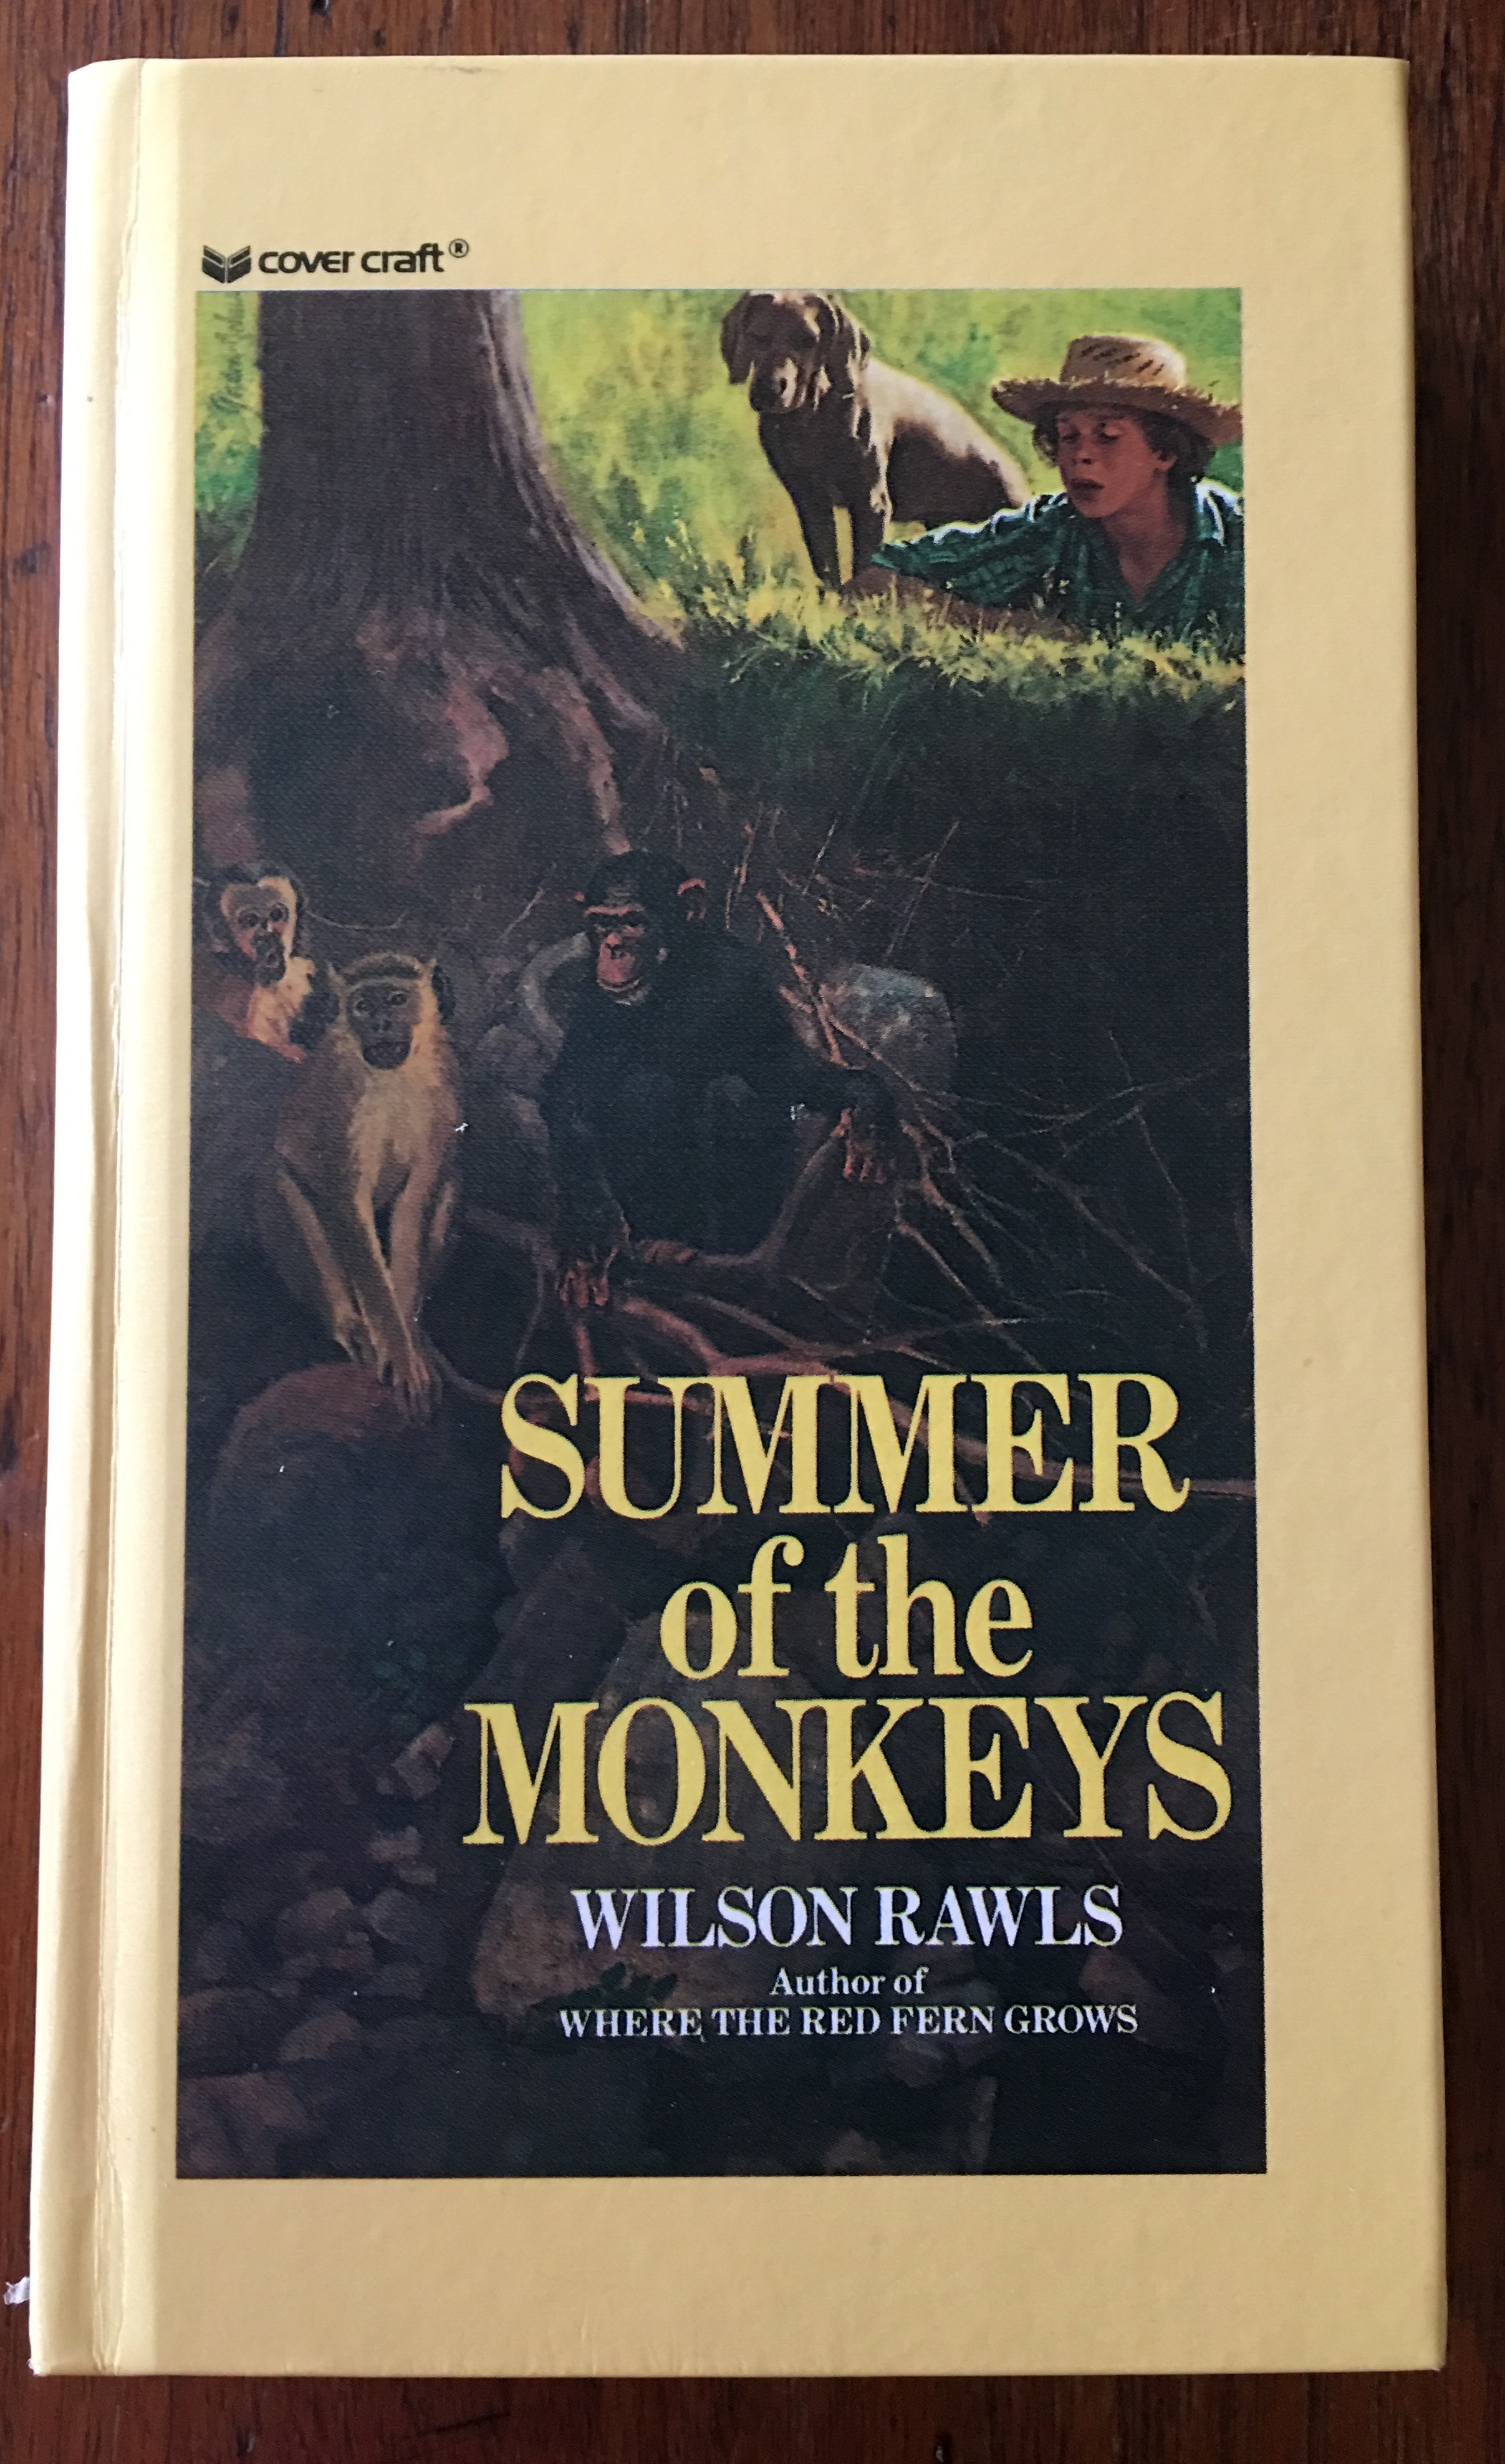 a character analysis of jay berry in the summer of the monkeys by wilson rawls Jay berry lee's grandpa had an explanation, of course-as he did for most things the monkeys had escaped from a traveling circus, and there was a handsome reward in store for anyone who could catch them.